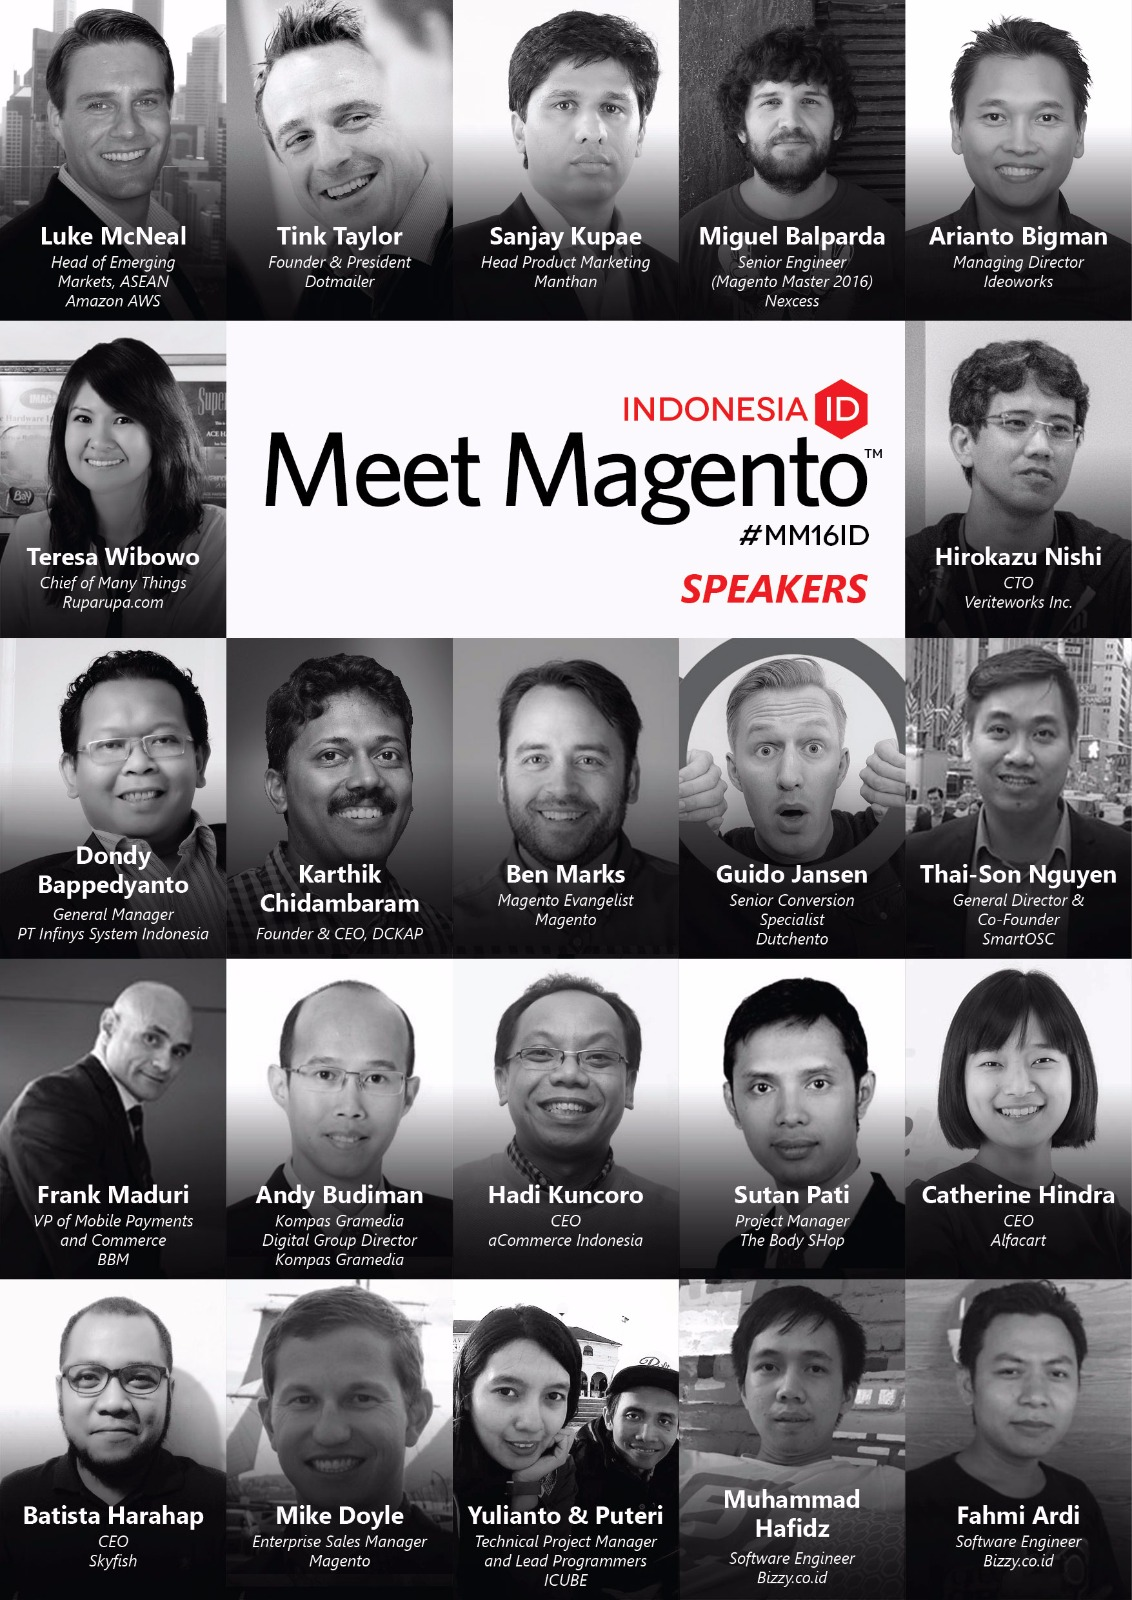 Meet Magento 2016 ID Speakers